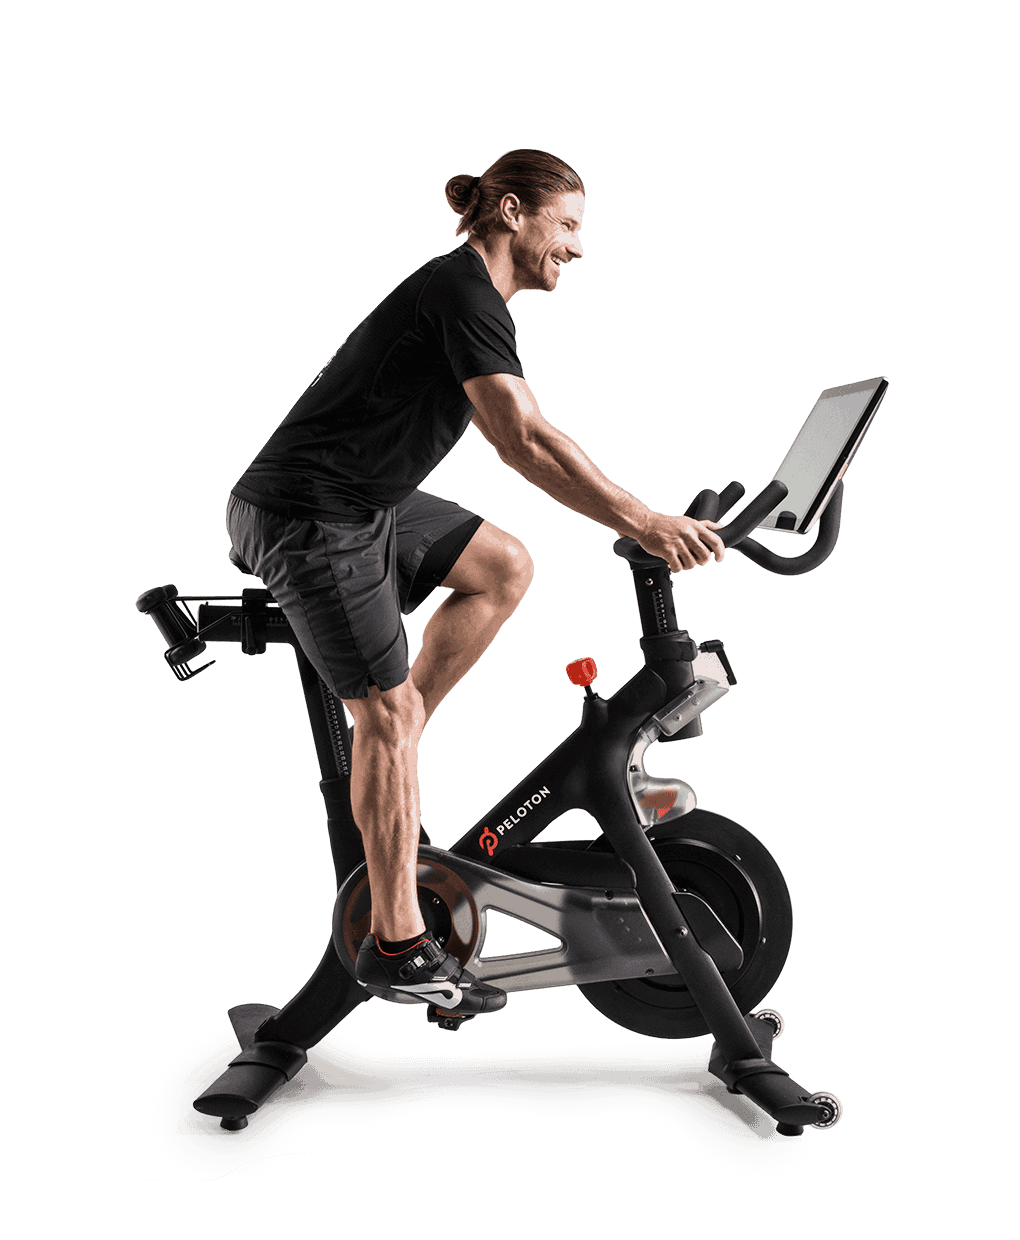 Peloton Black Friday Fit-Tech Deals